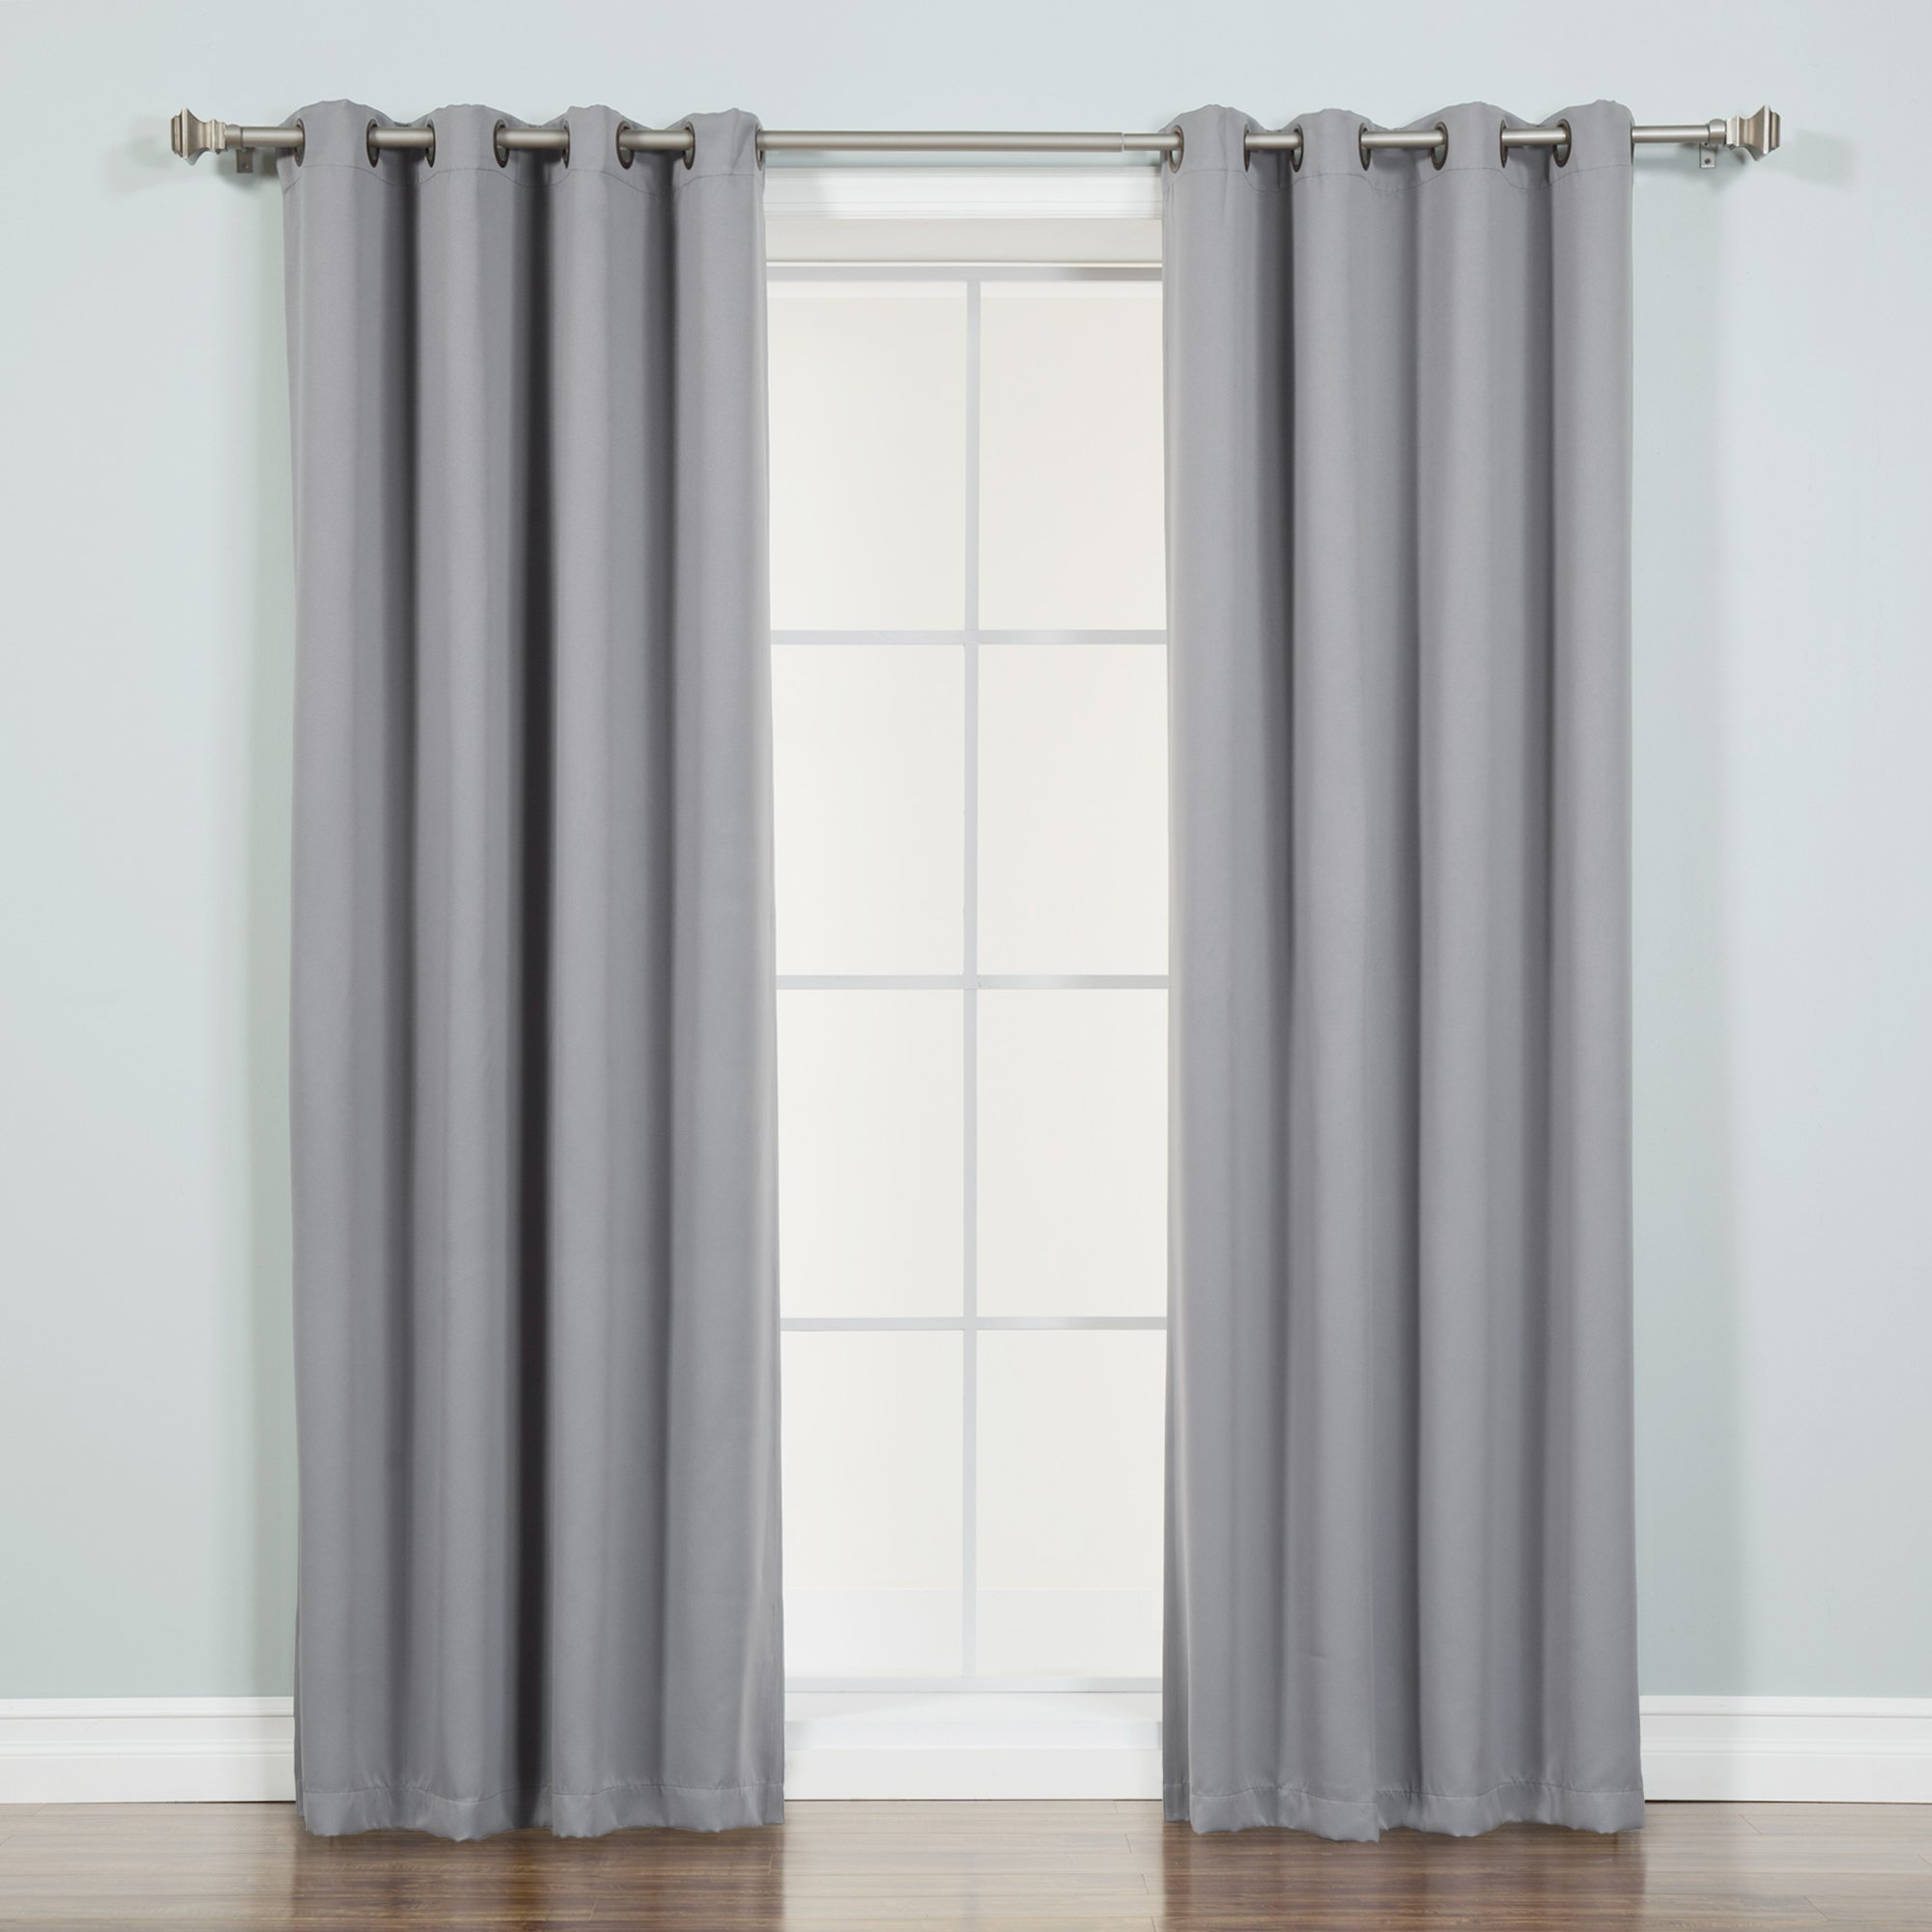 Best Home Fashion Thermal Insulated Blackout Curtains - Antique Bronze Grommet Top - Grey - 52'' W x 72'' L - (Set of 2 Panels)